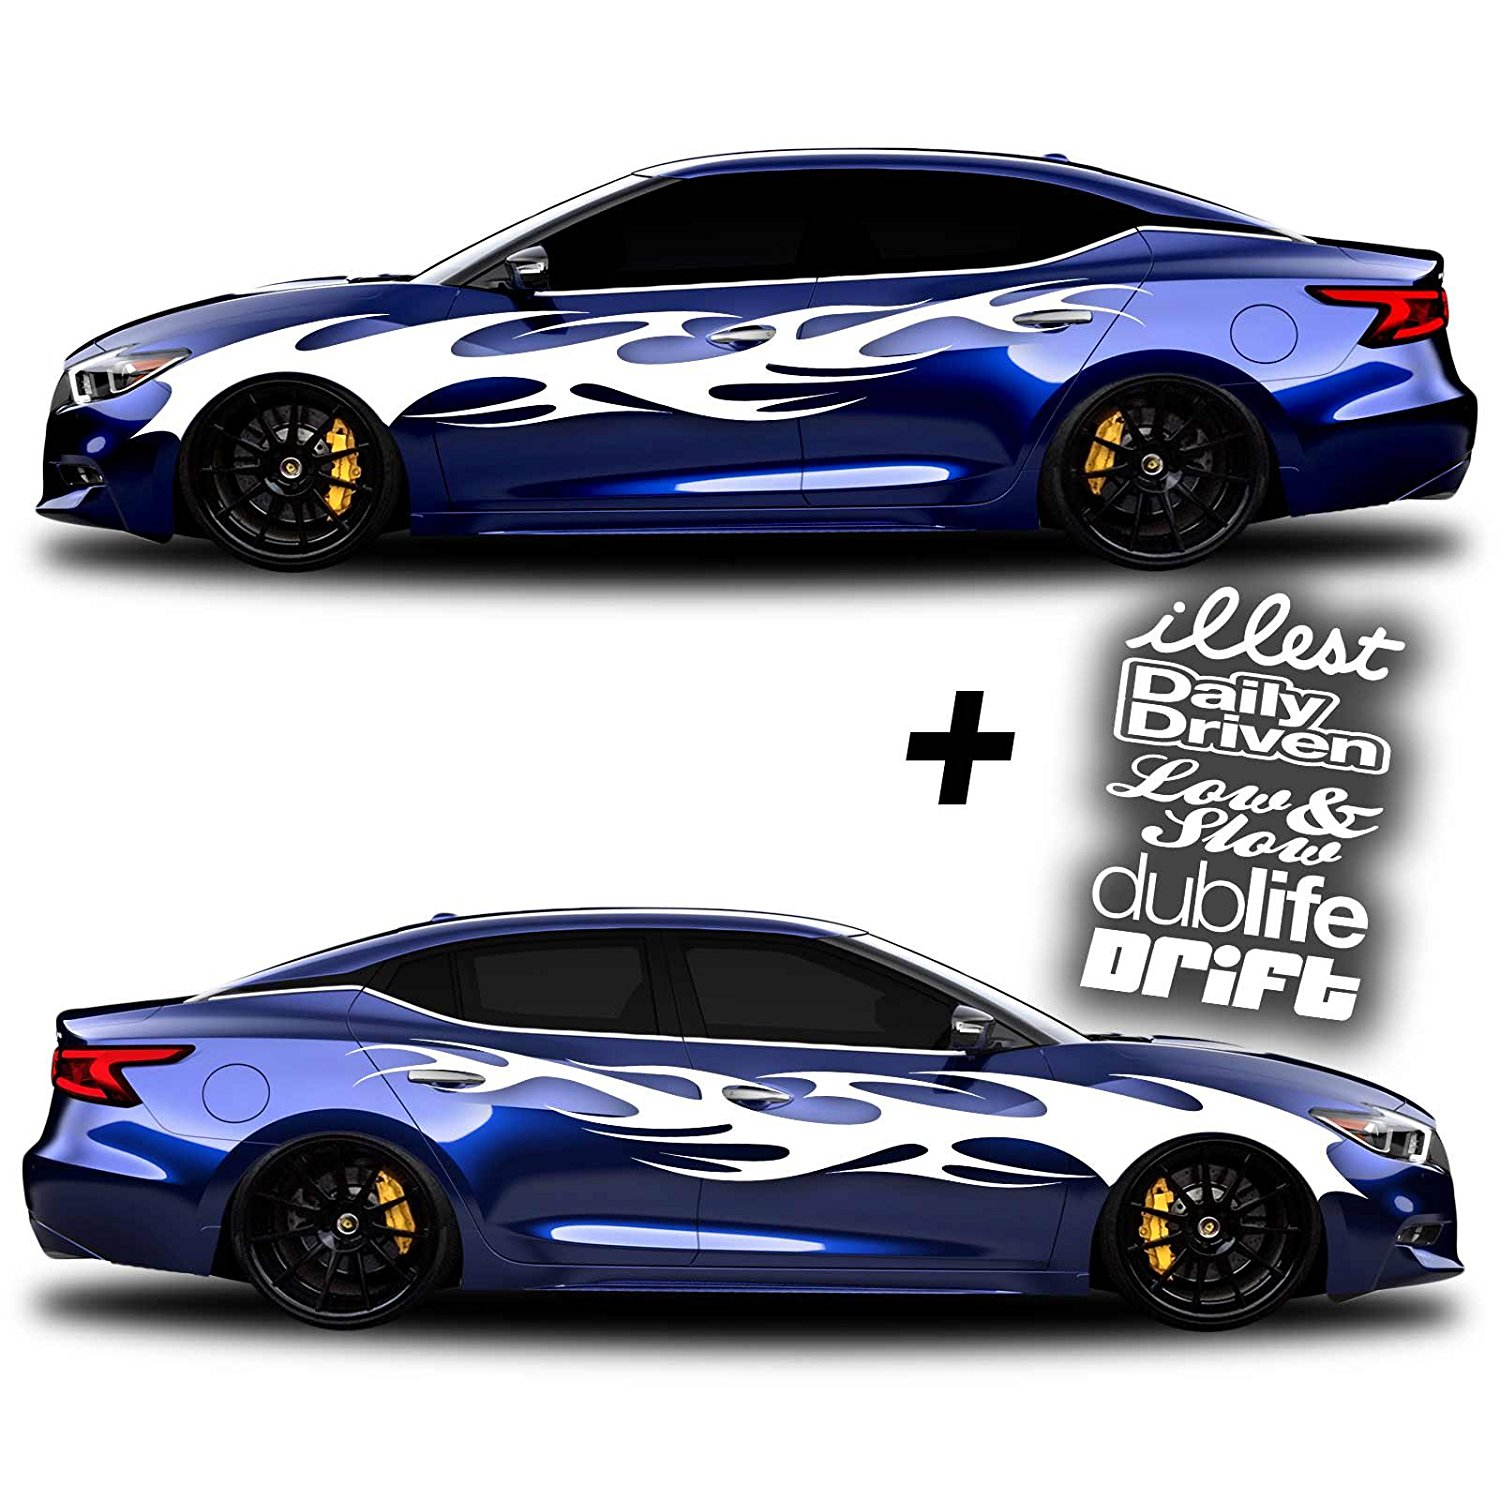 Cheap Drift Car Decals Find Drift Car Decals Deals On Line At - Car side decals designpopular sport car graphicsbuy cheap sport car graphics lots from